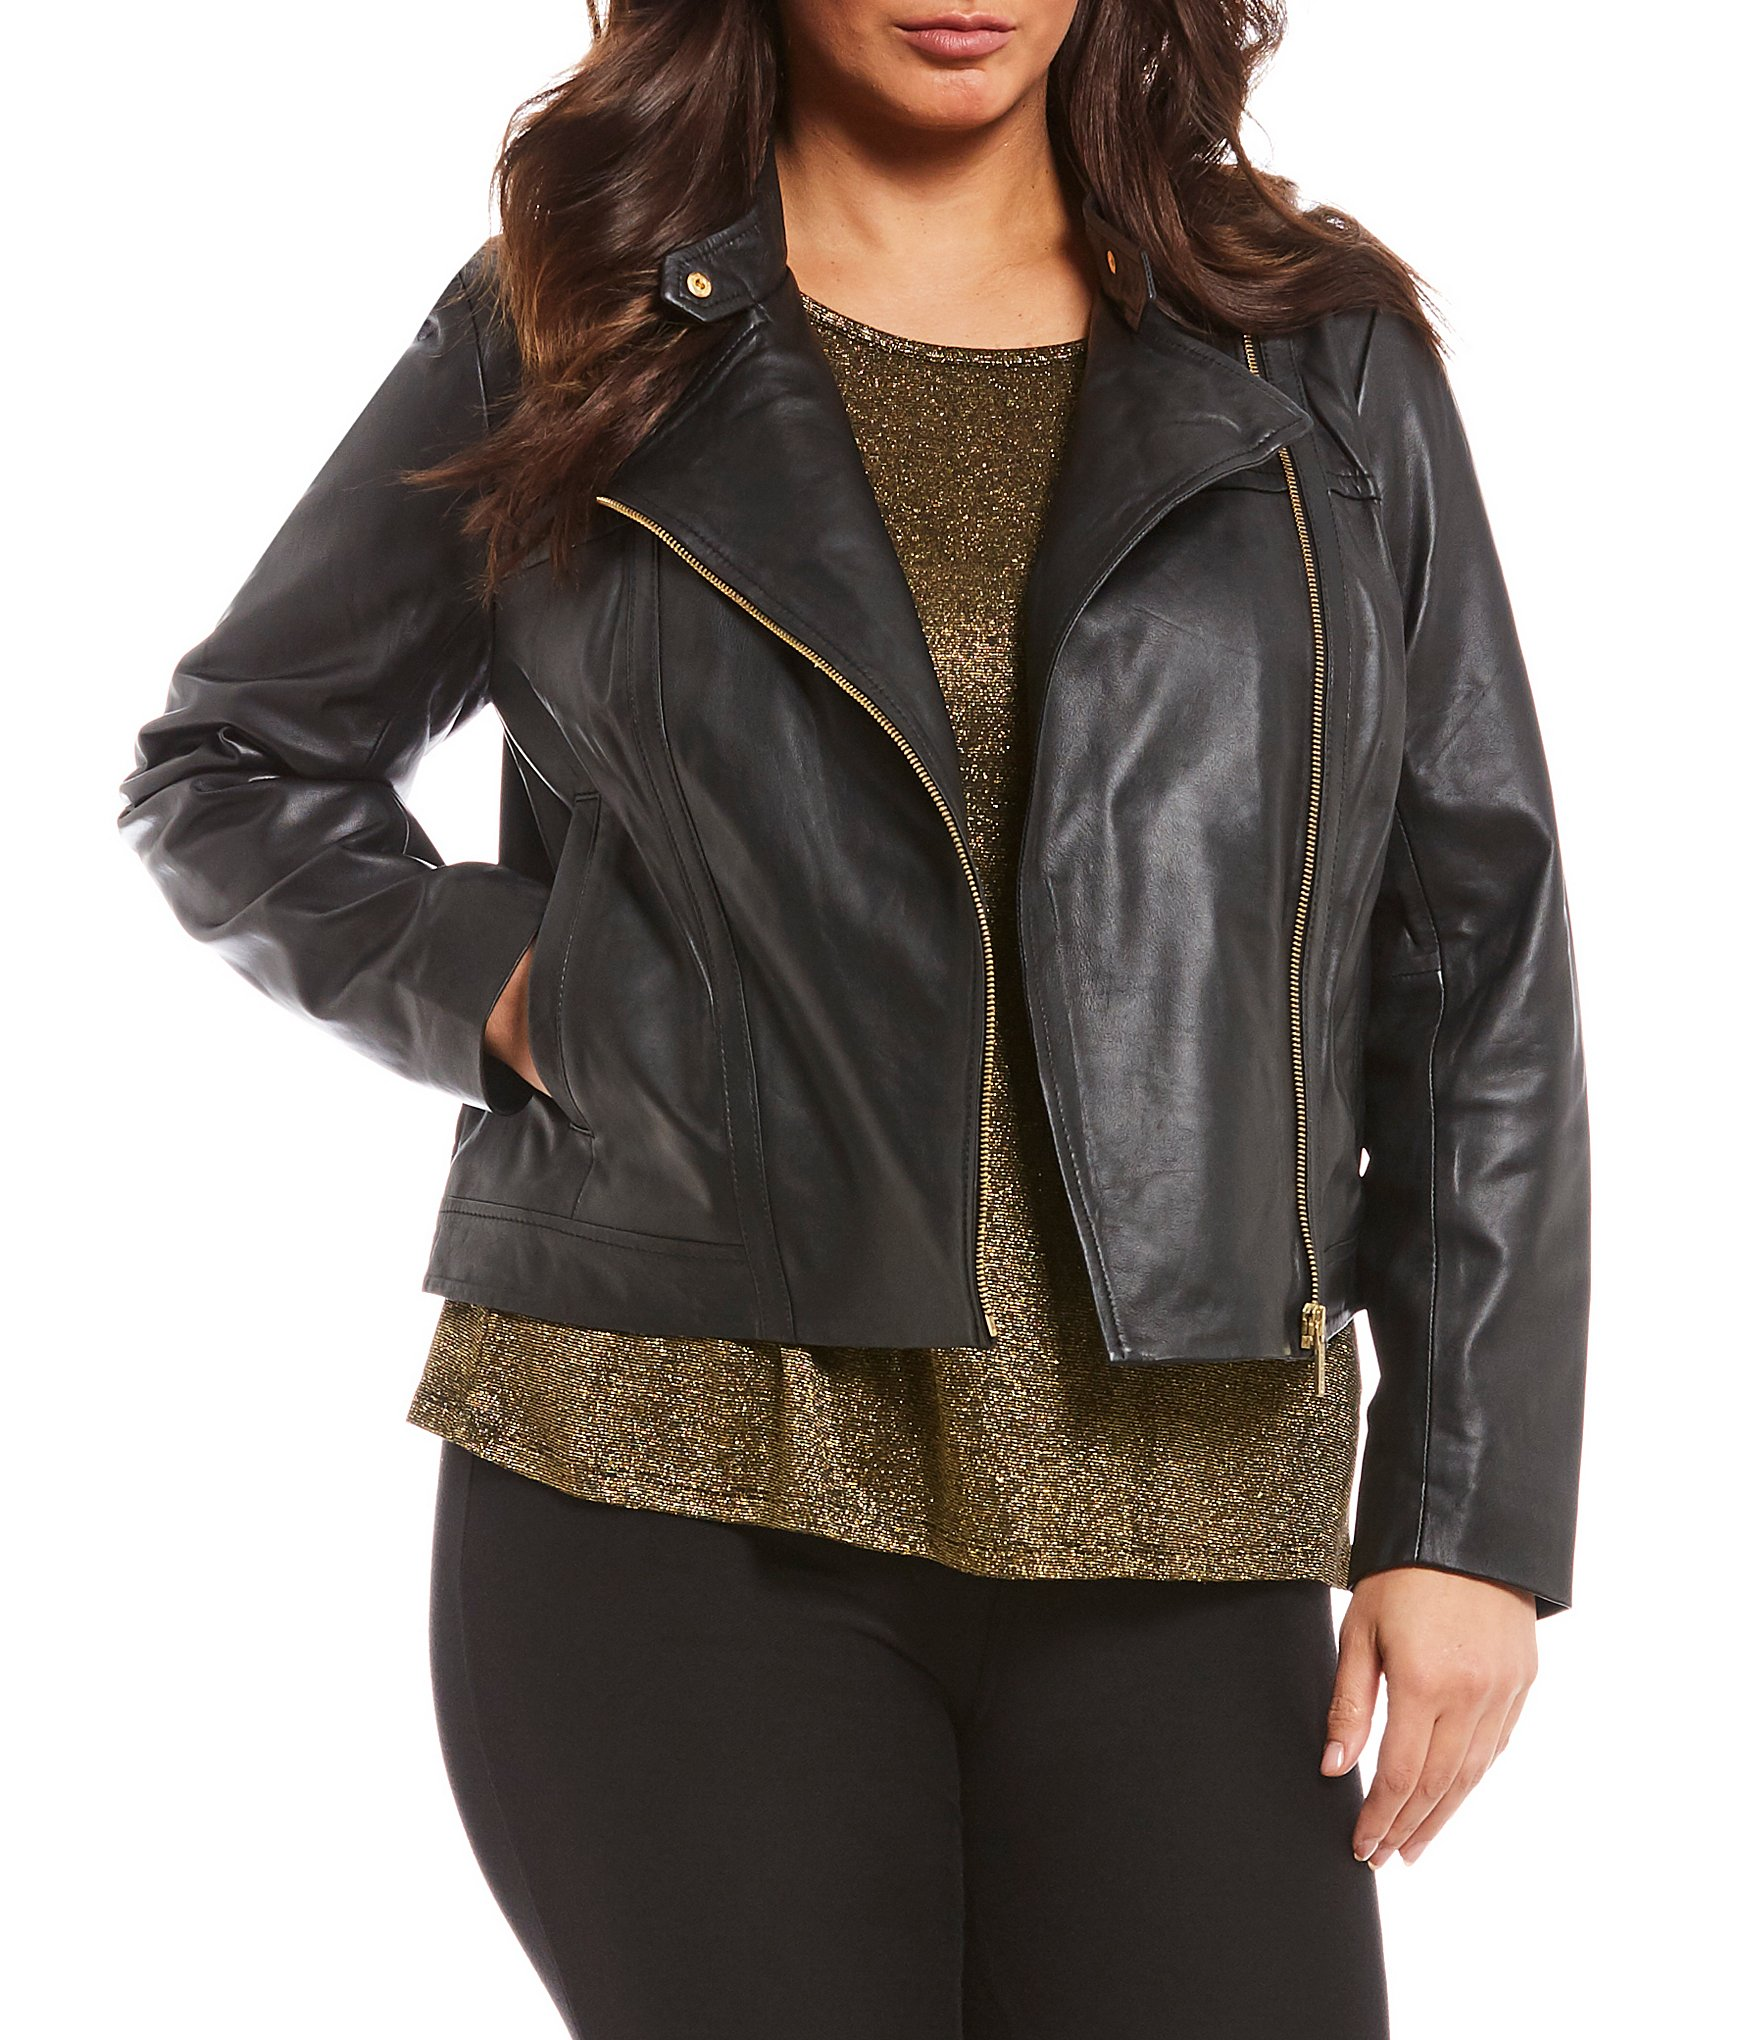 674ccec0c7bf0 Plus-Size Coats